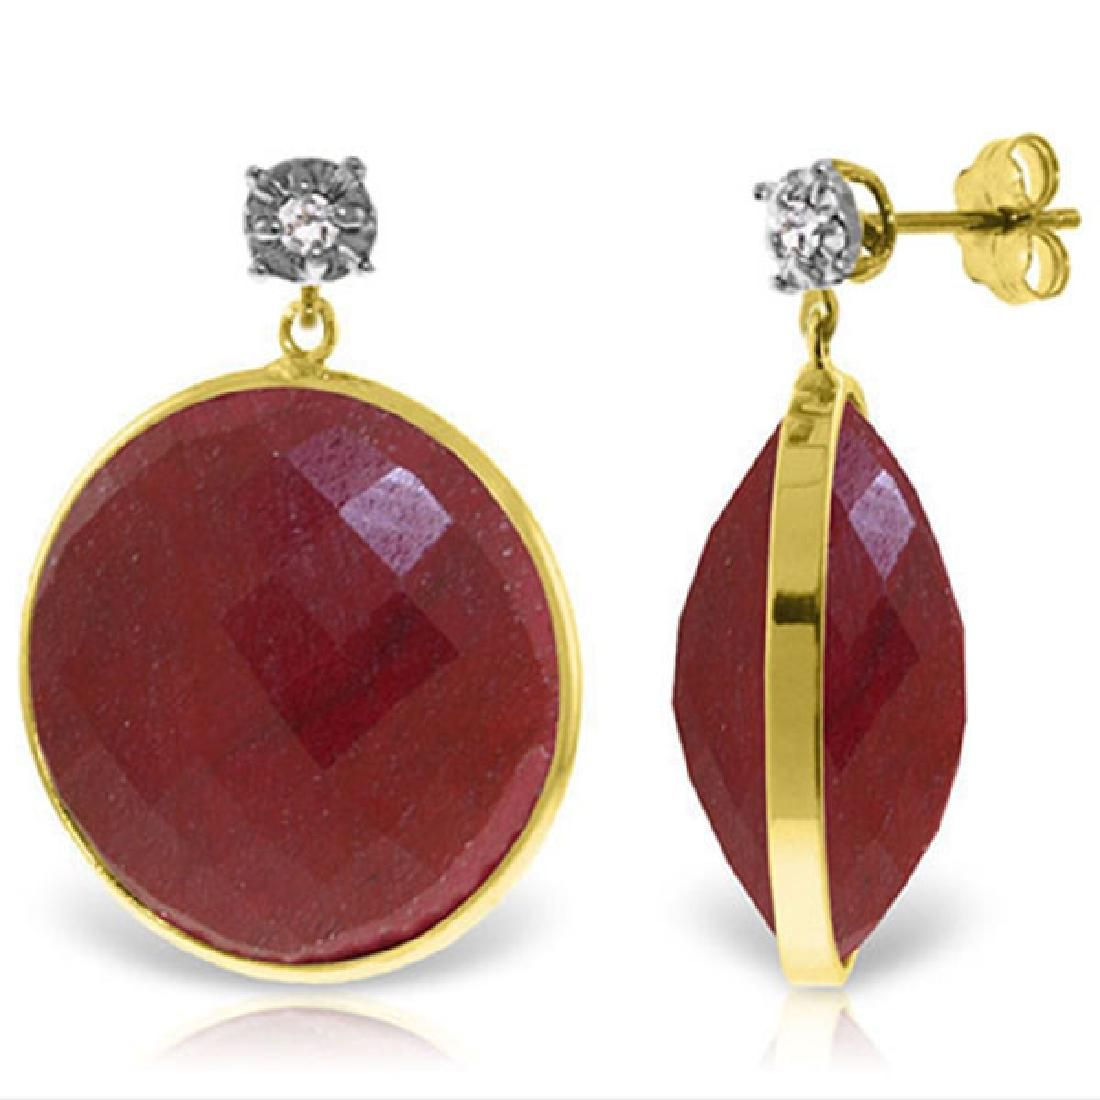 Genuine 46.06 ctw Ruby & Diamond Earrings Jewelry 14KT